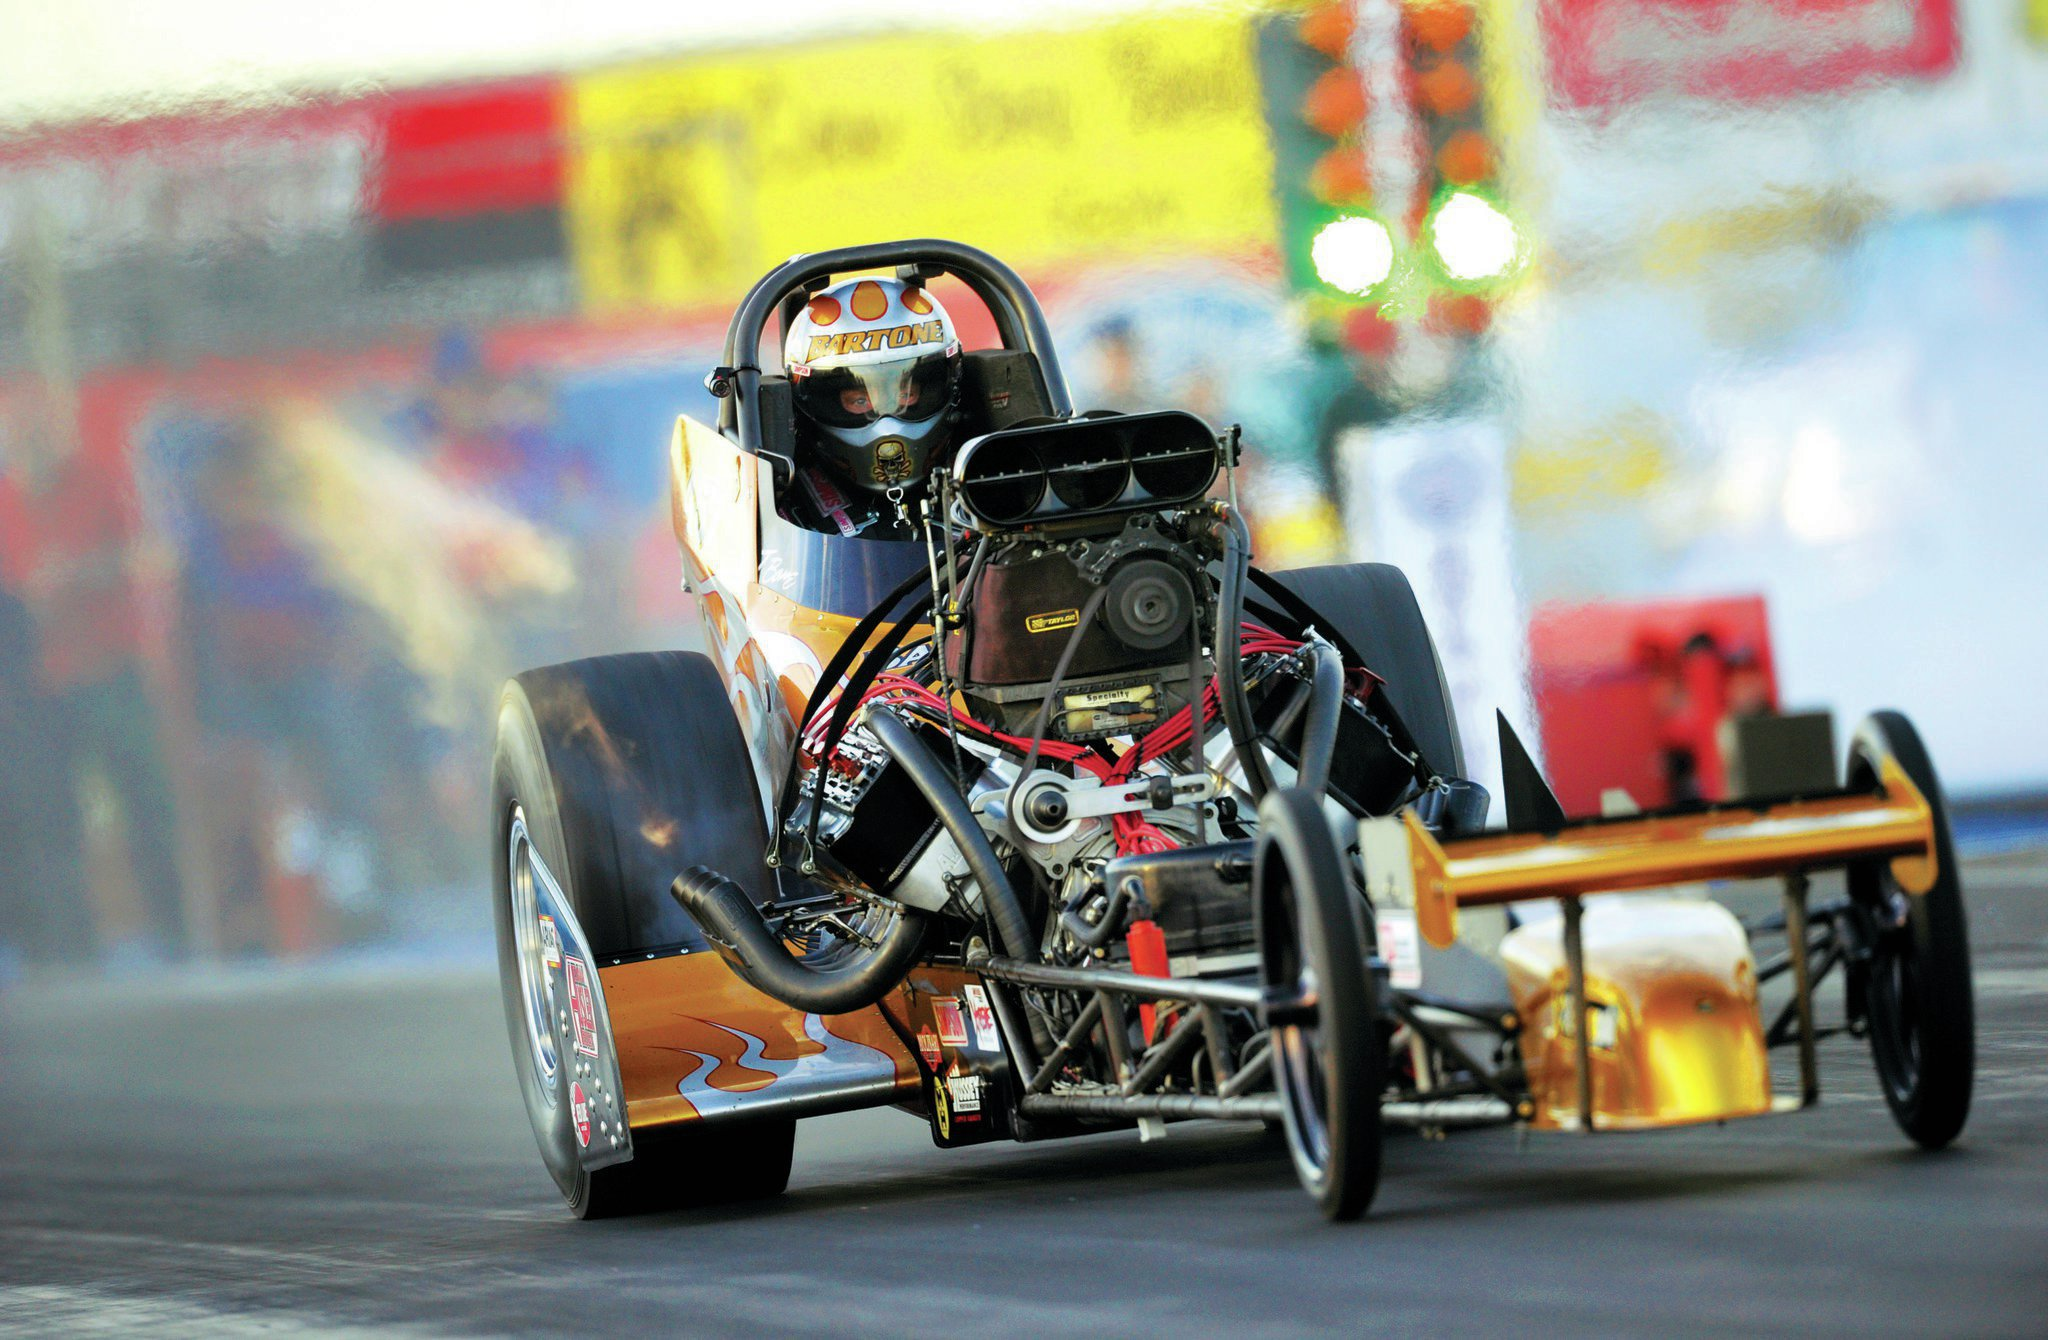 A long tow from Long Island paid off in a clean sweep of Top Fuel Eliminator, all on the same run. In the final round, Tony Bartone set overall low e.t. (5.623) and top speed (262.13), defeating Rick White (5.715, 252.52). Legendary tuner Steve Boggs produced the horsepower. National Dragster photographer Marc Gewertz got the shot.